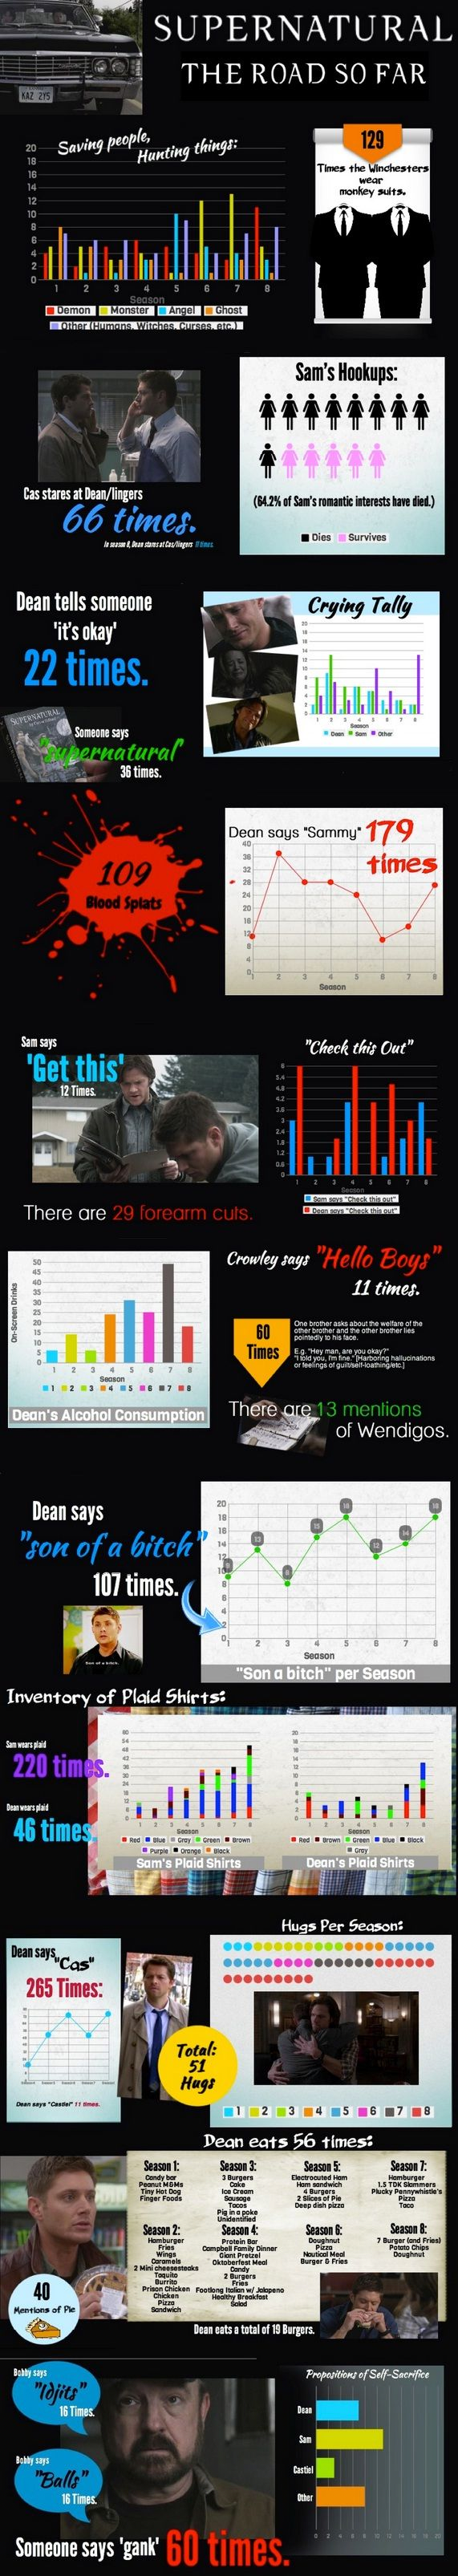 Holy hell, someone counted all the things. Though, why no death tallies? #Supernatural